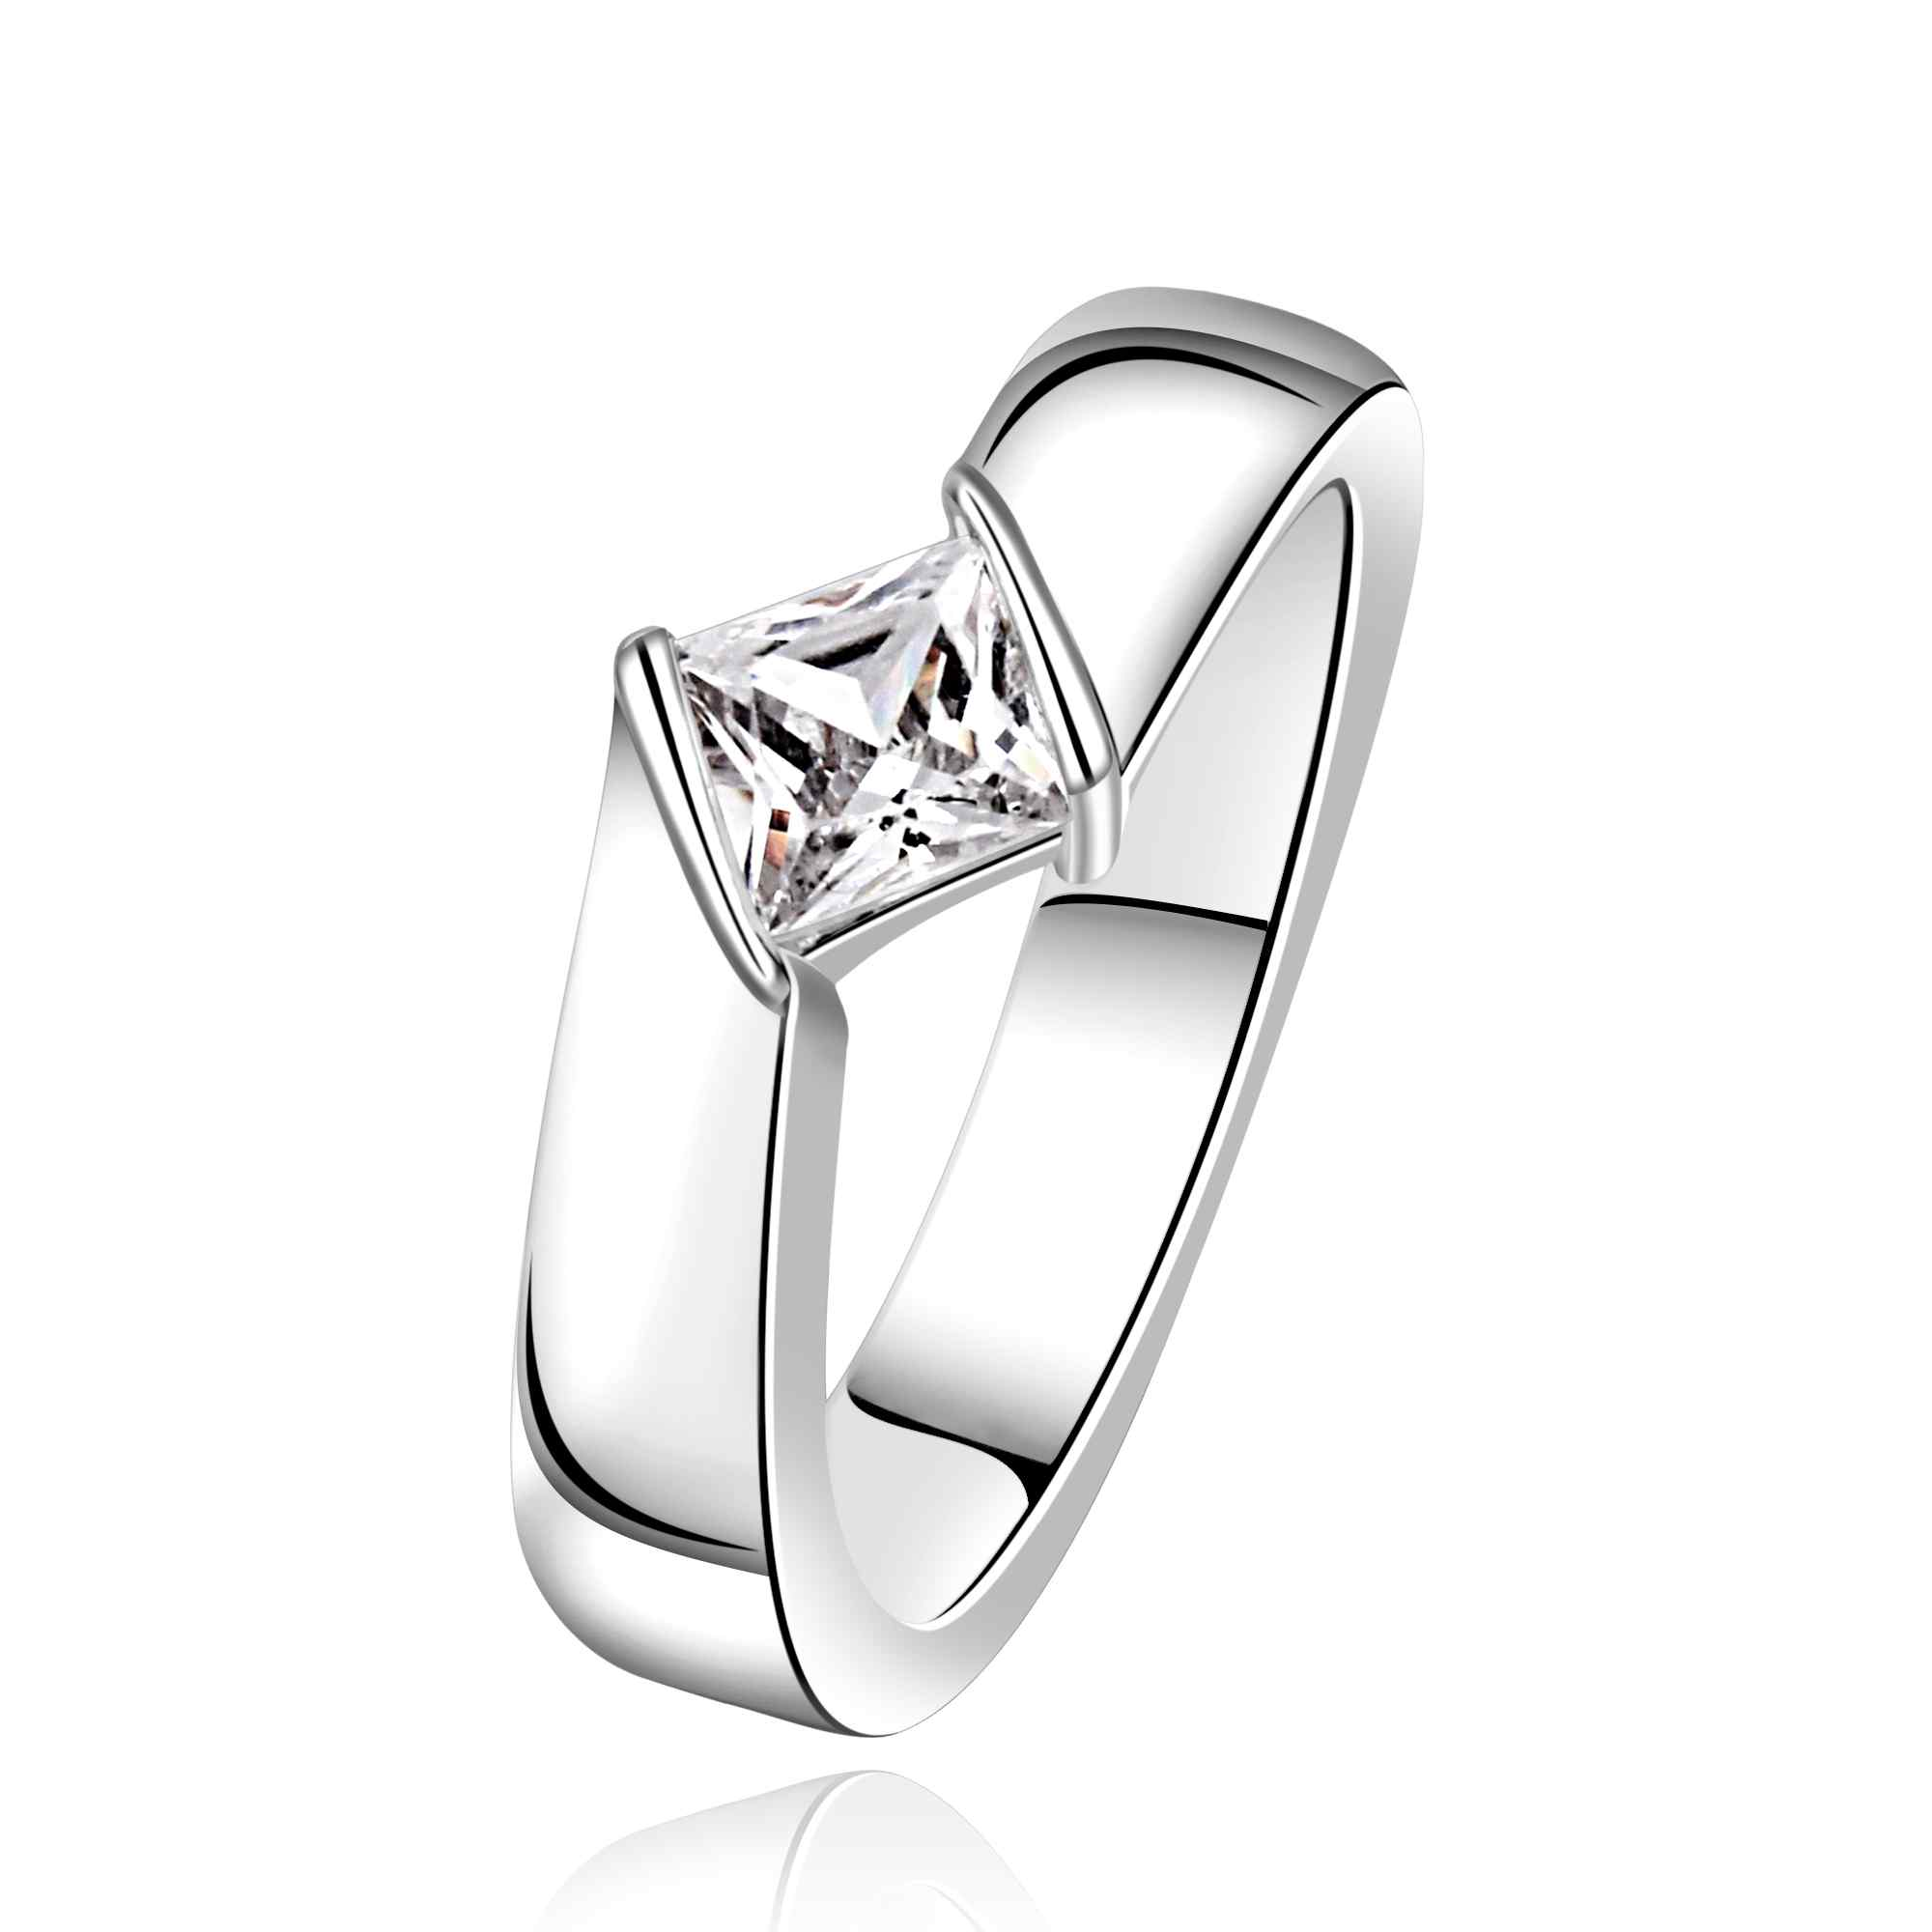 build a wedding ring Hand Engraved Solitaire Engagement Ring in 18K Yellow Gold